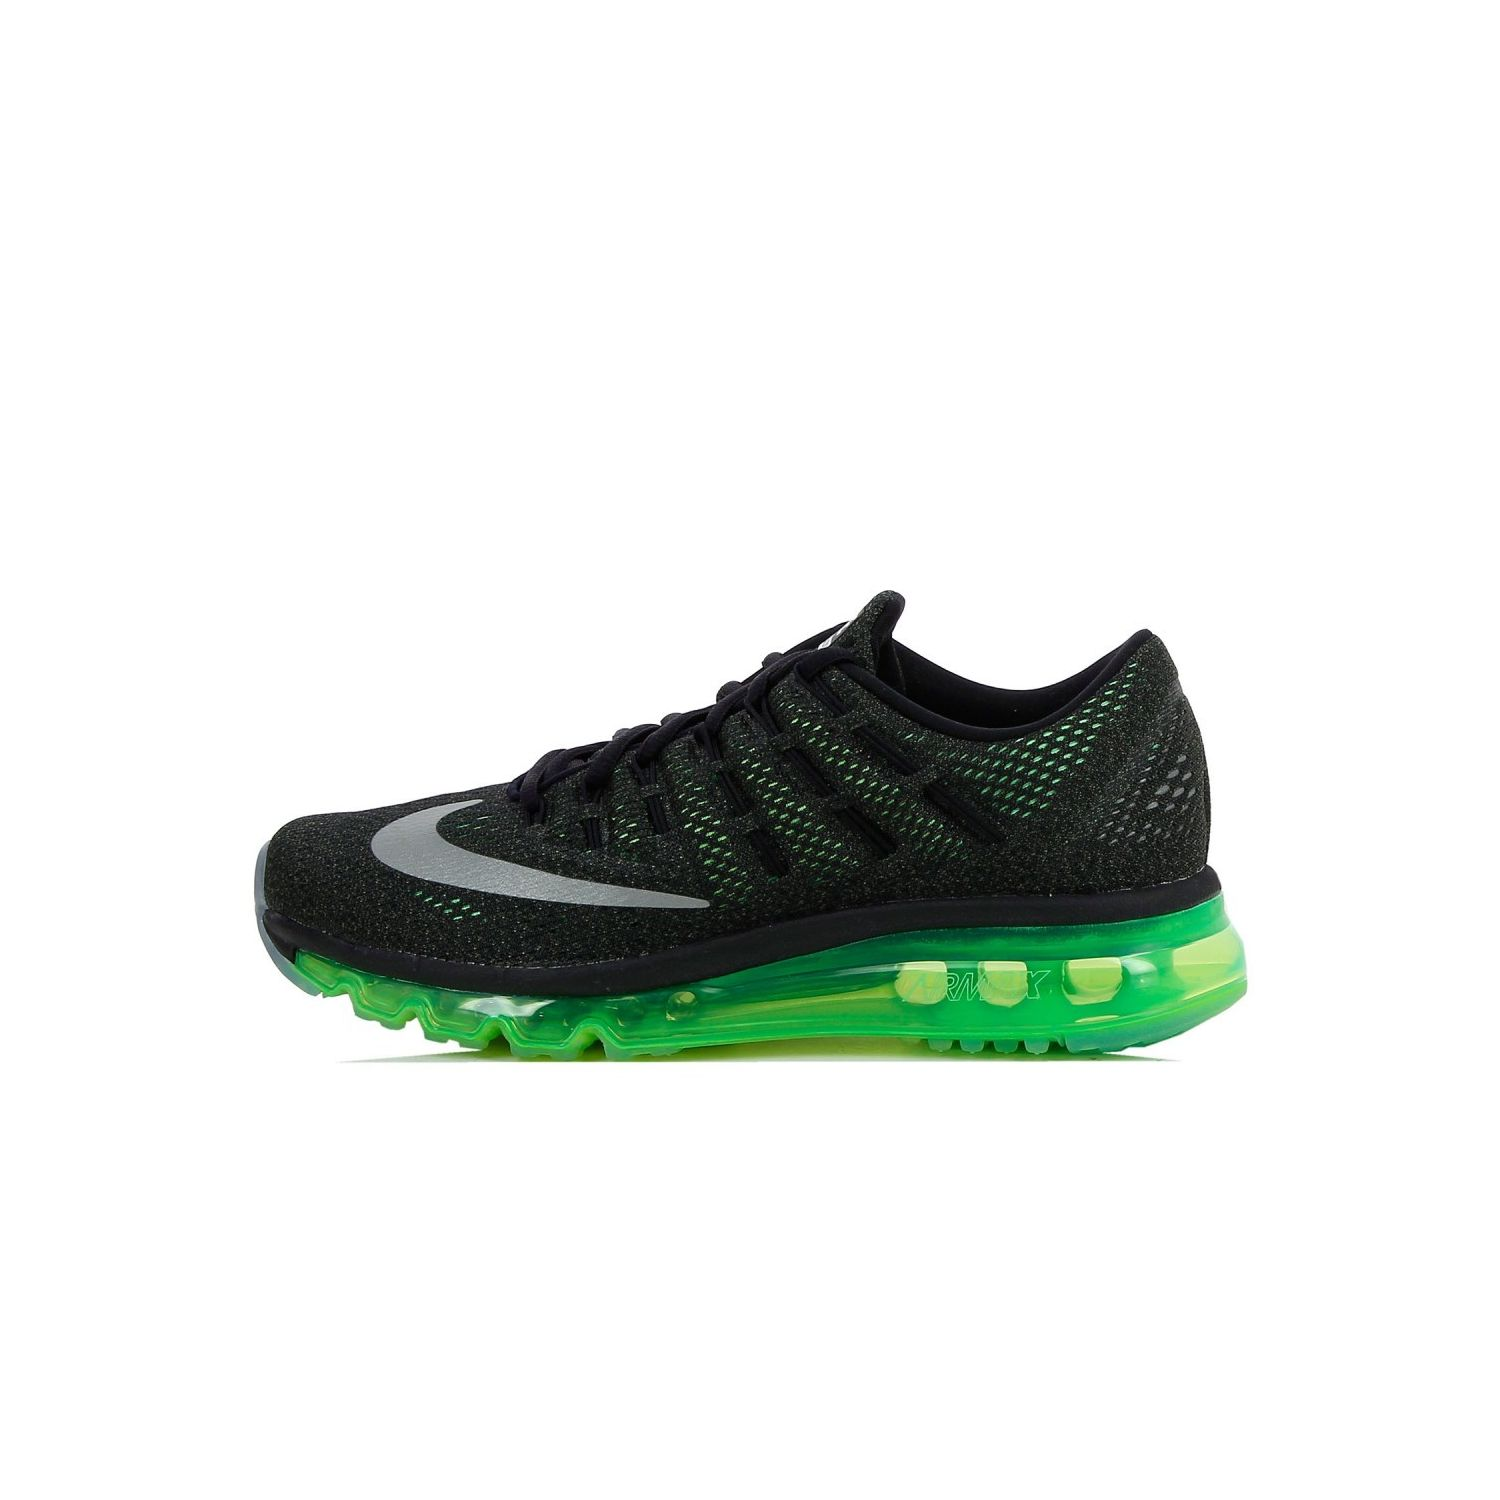 NIKE- Basket Air Max 2016 Junior - Ref. 807236-003